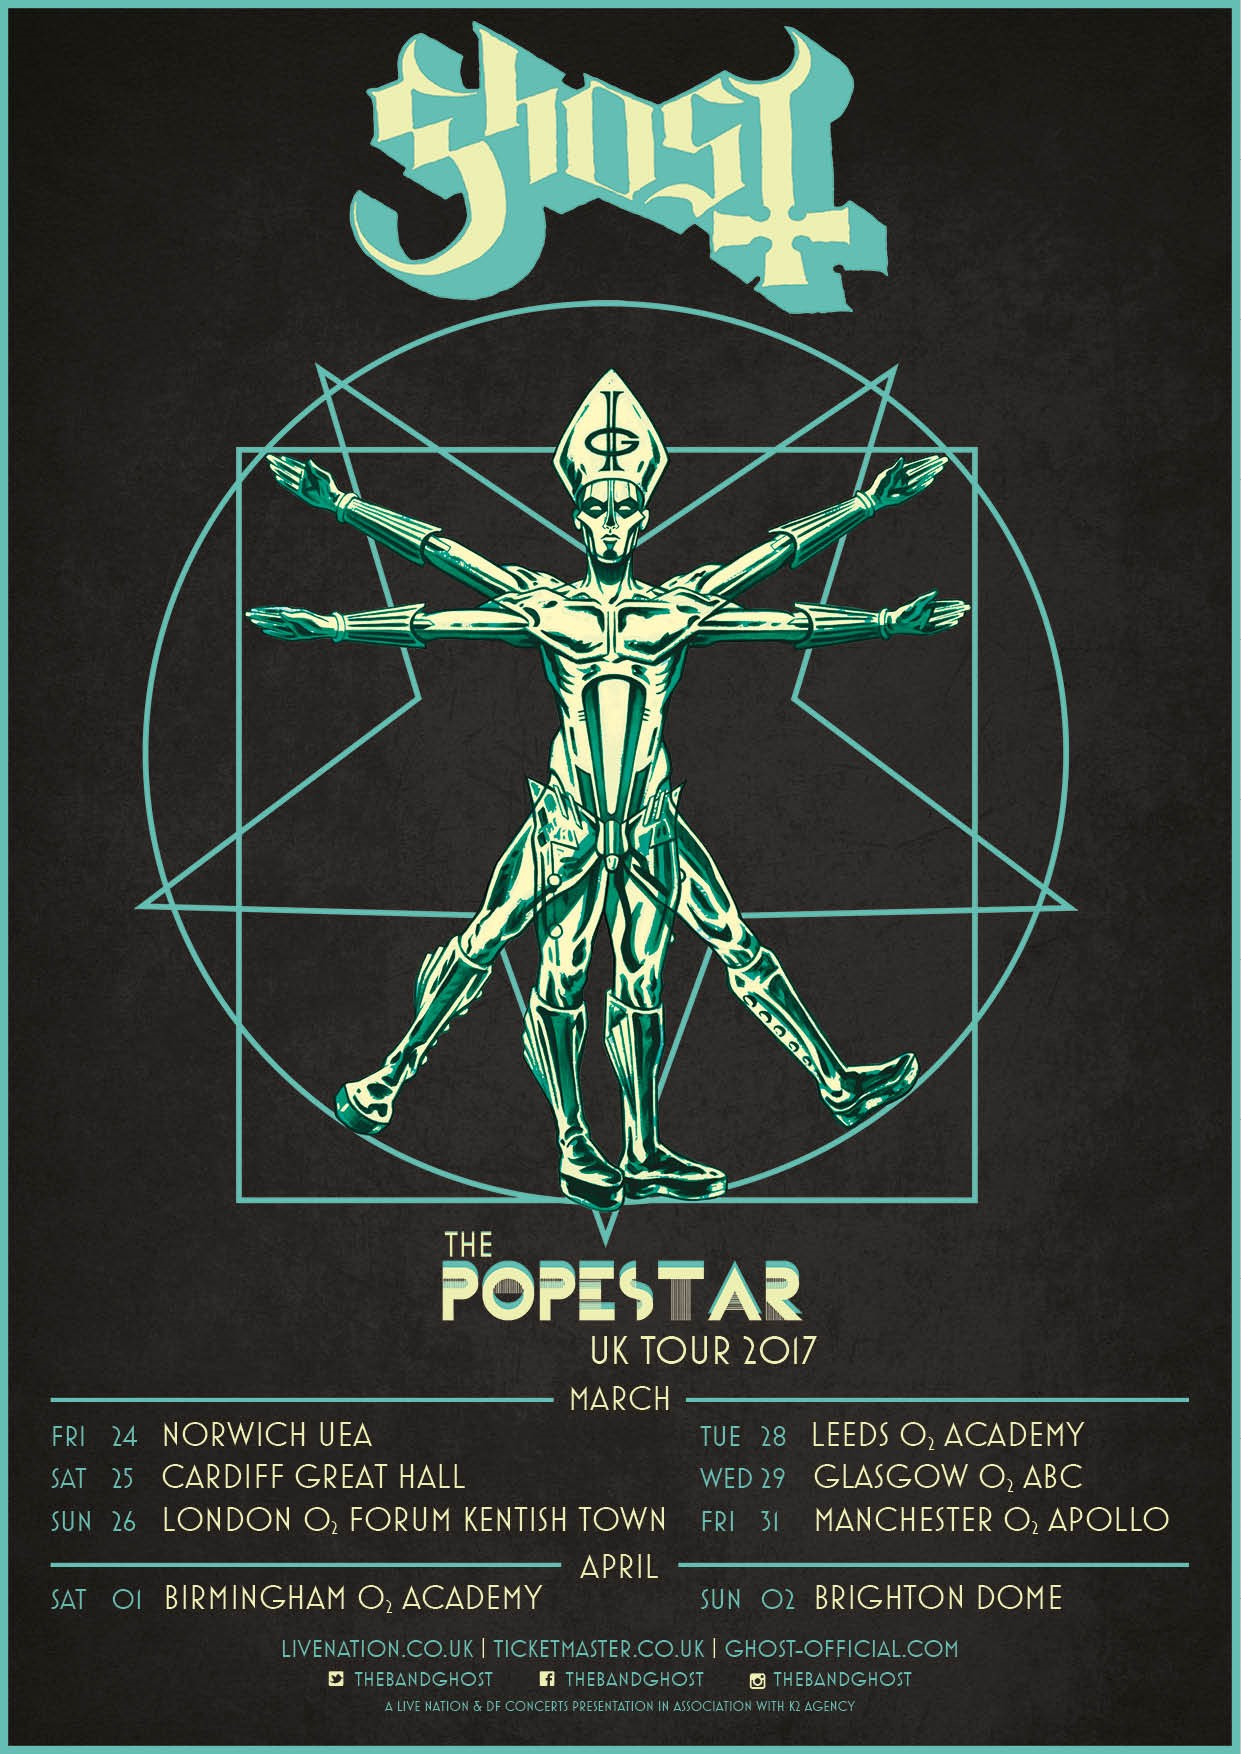 Welcome to david m brinley illustration artist painter designer ghost the popestar european tour 2017 official popestar tour poster web kristyandbryce Images